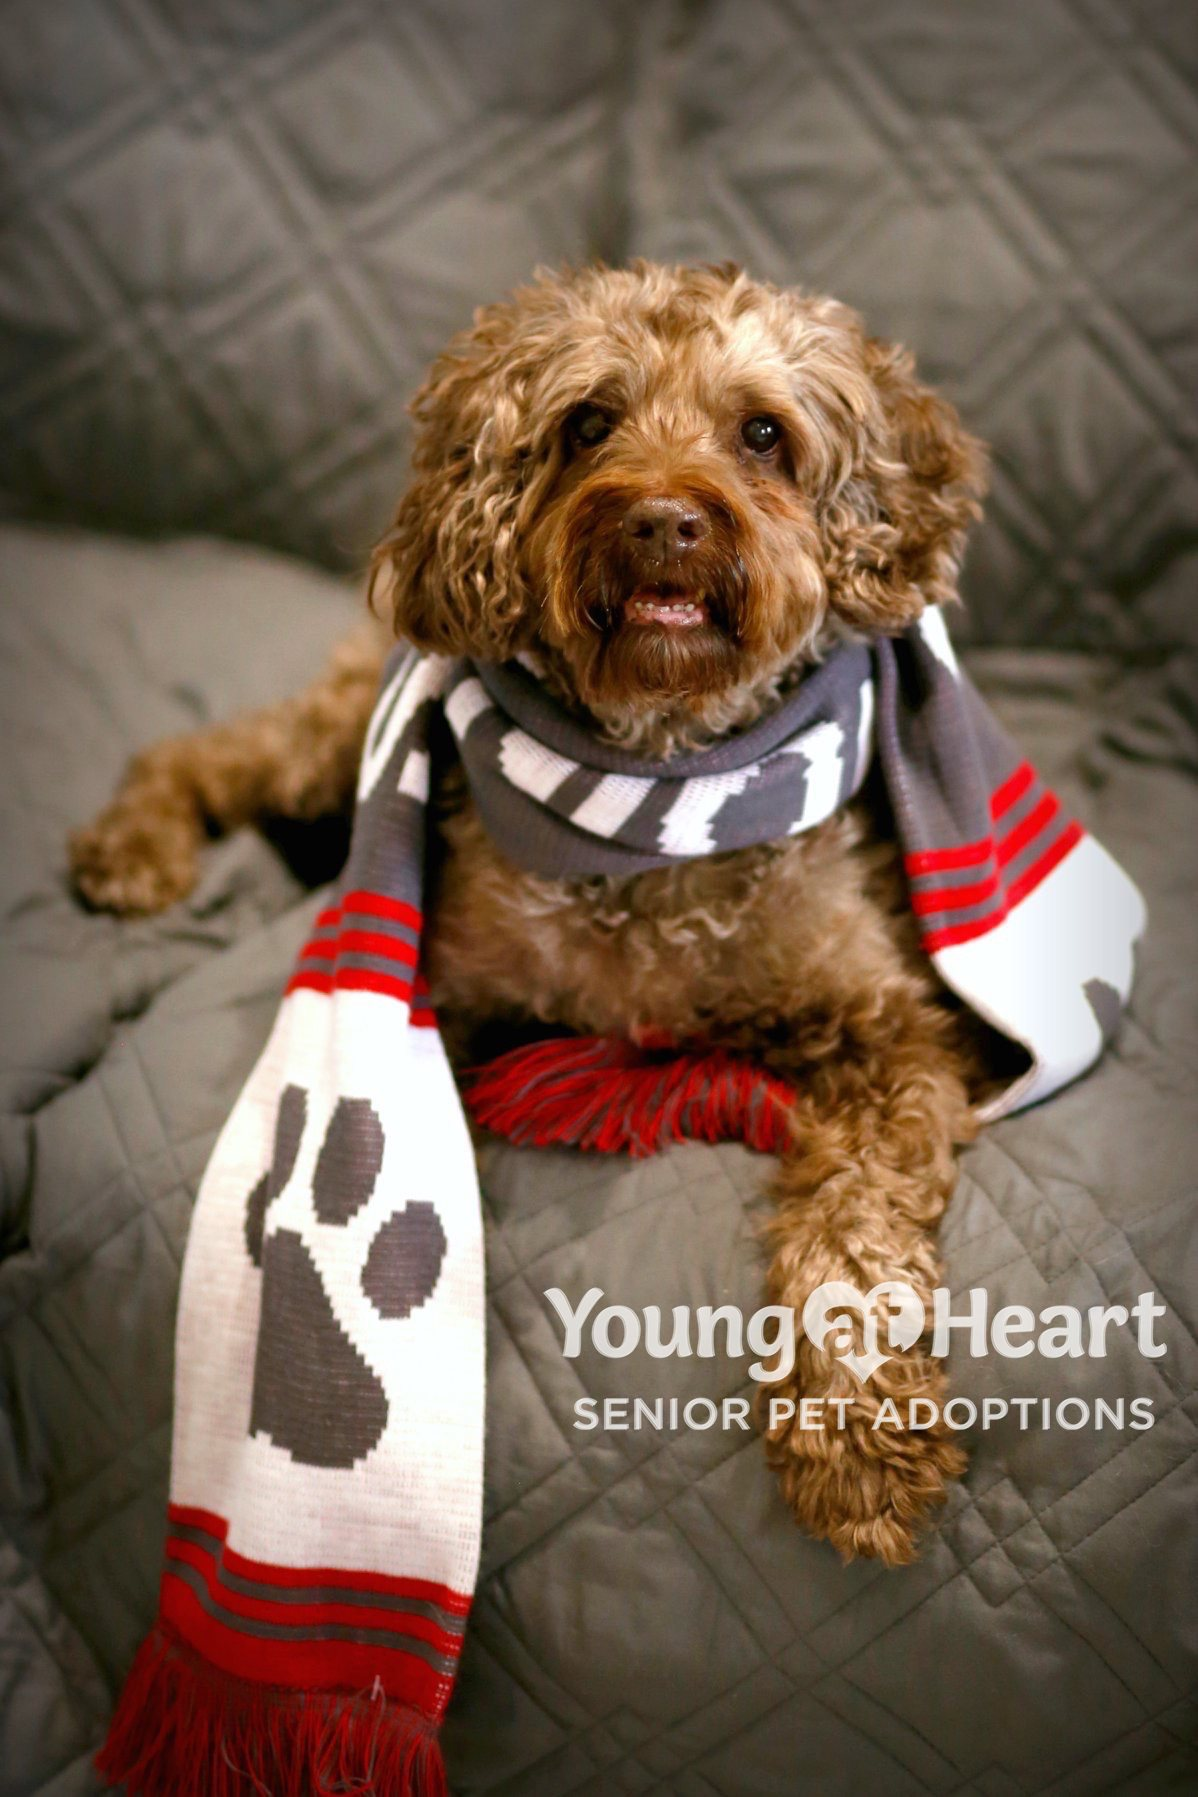 Young at Heart Constant Companion Program